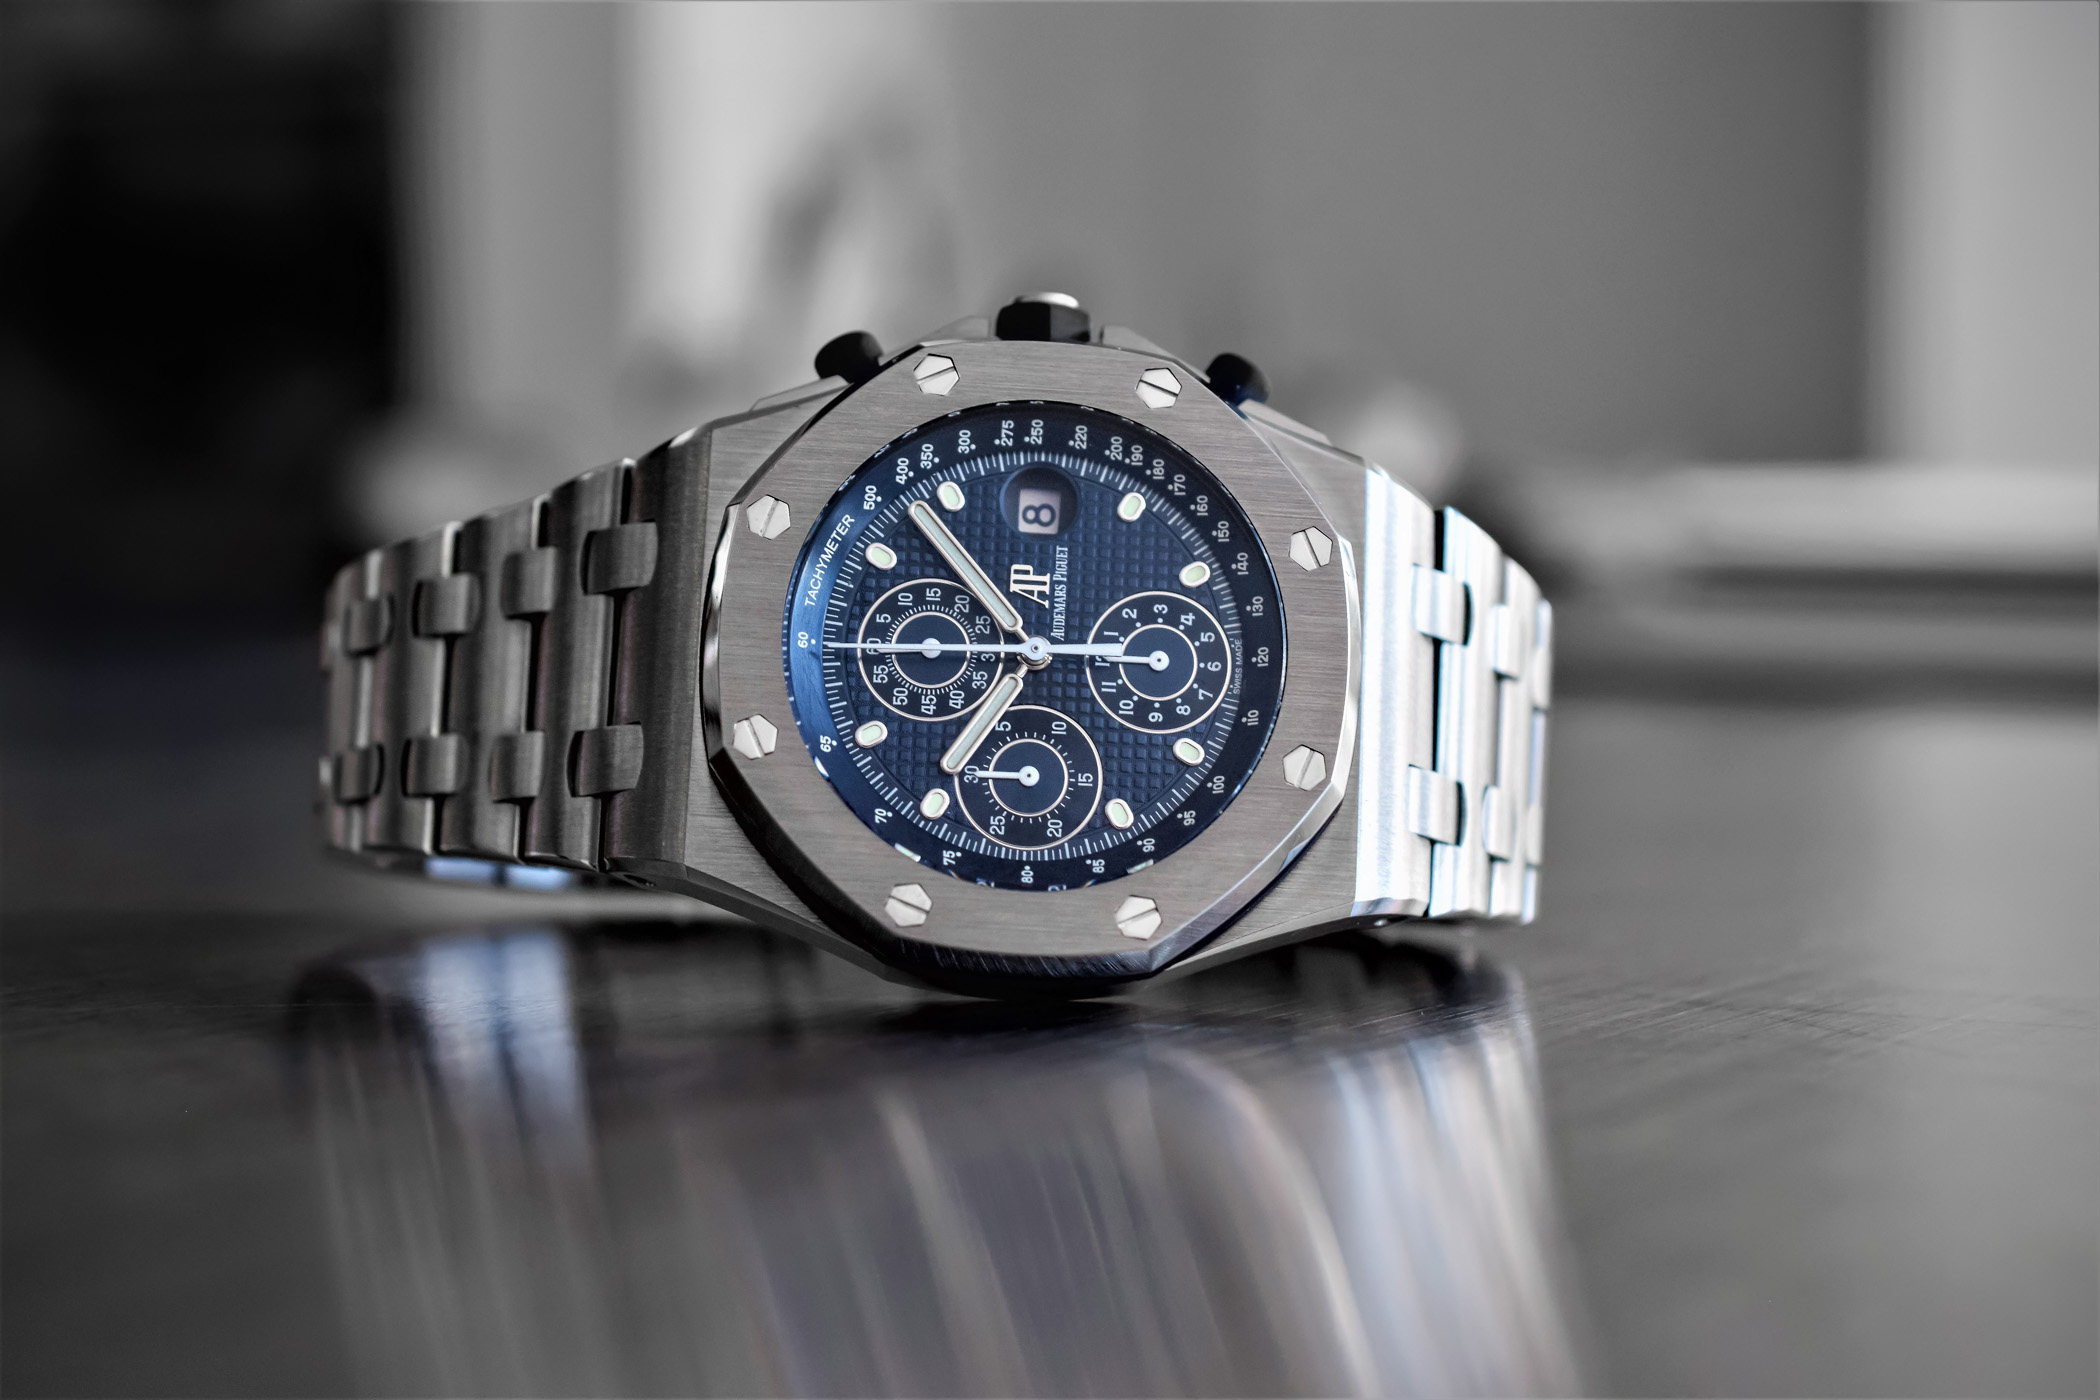 Audemars Piguet Royal Oak Offshore Chronograph Reedition 25th Anniversary 26237ST - 10